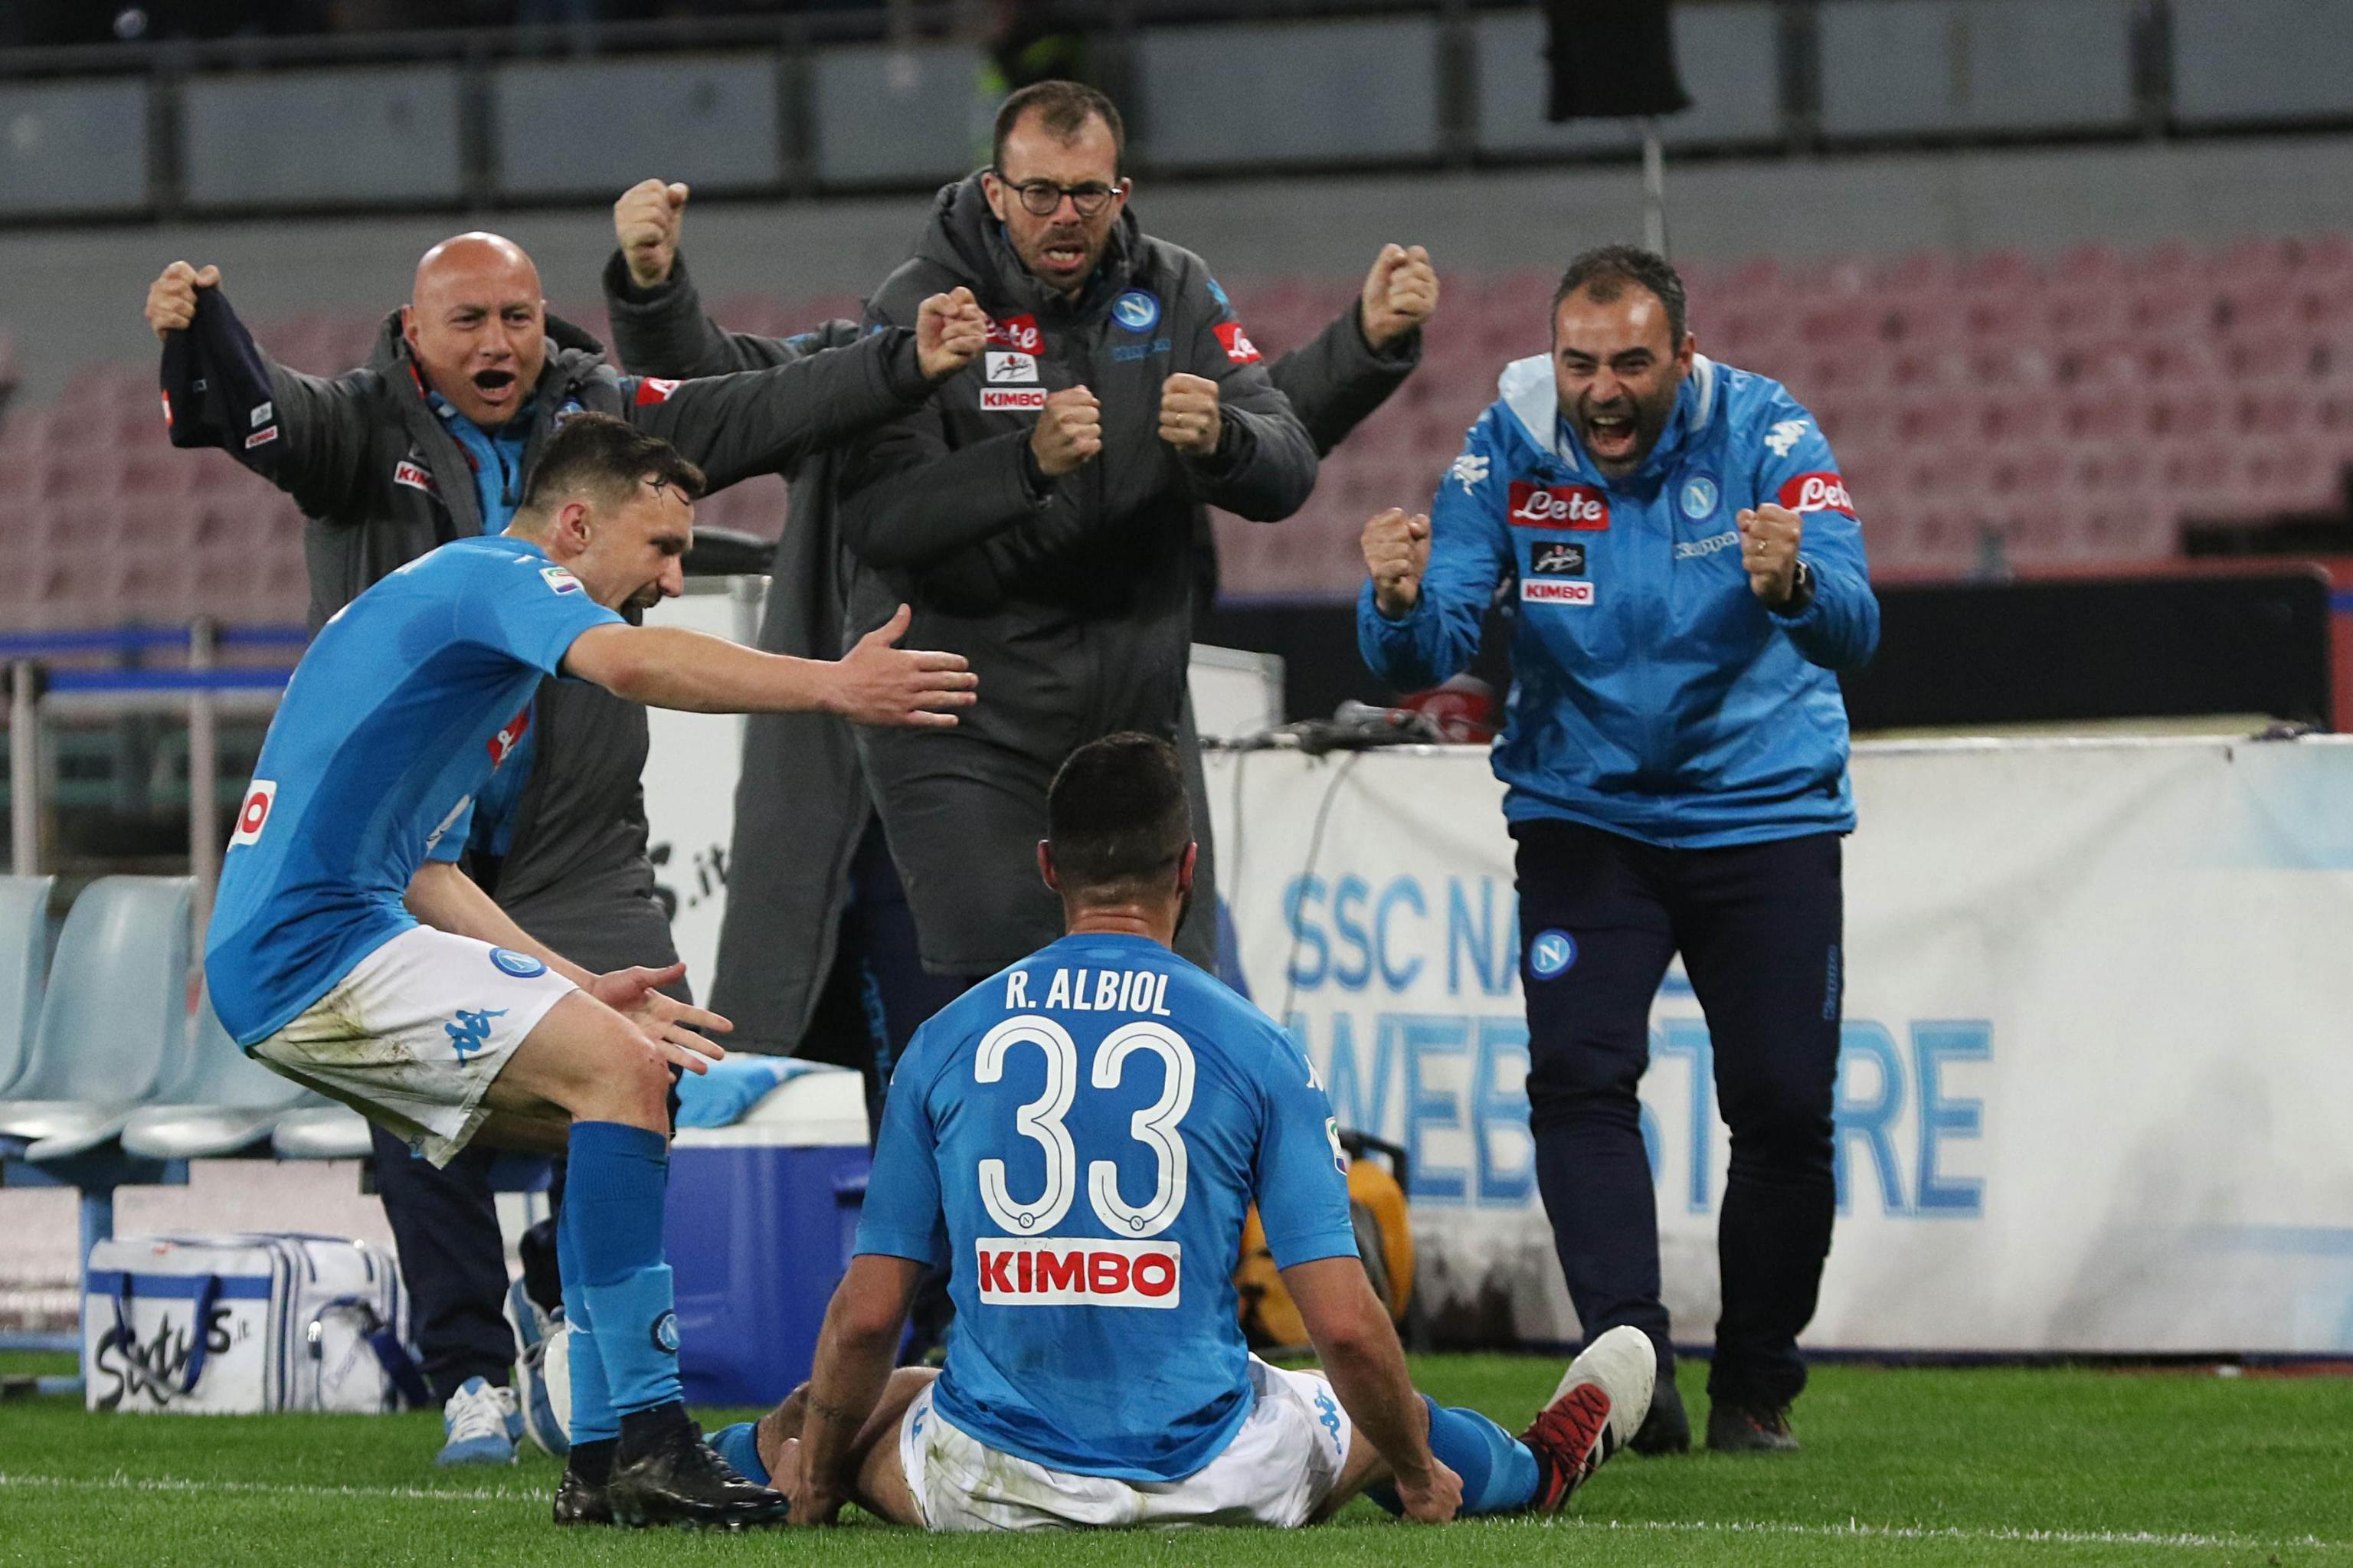 Napoli 1 Genoa 0: Raul Albiol nets on 200th appearance as Maurizio Sarri's side close gap on Serie A leaders Juventus